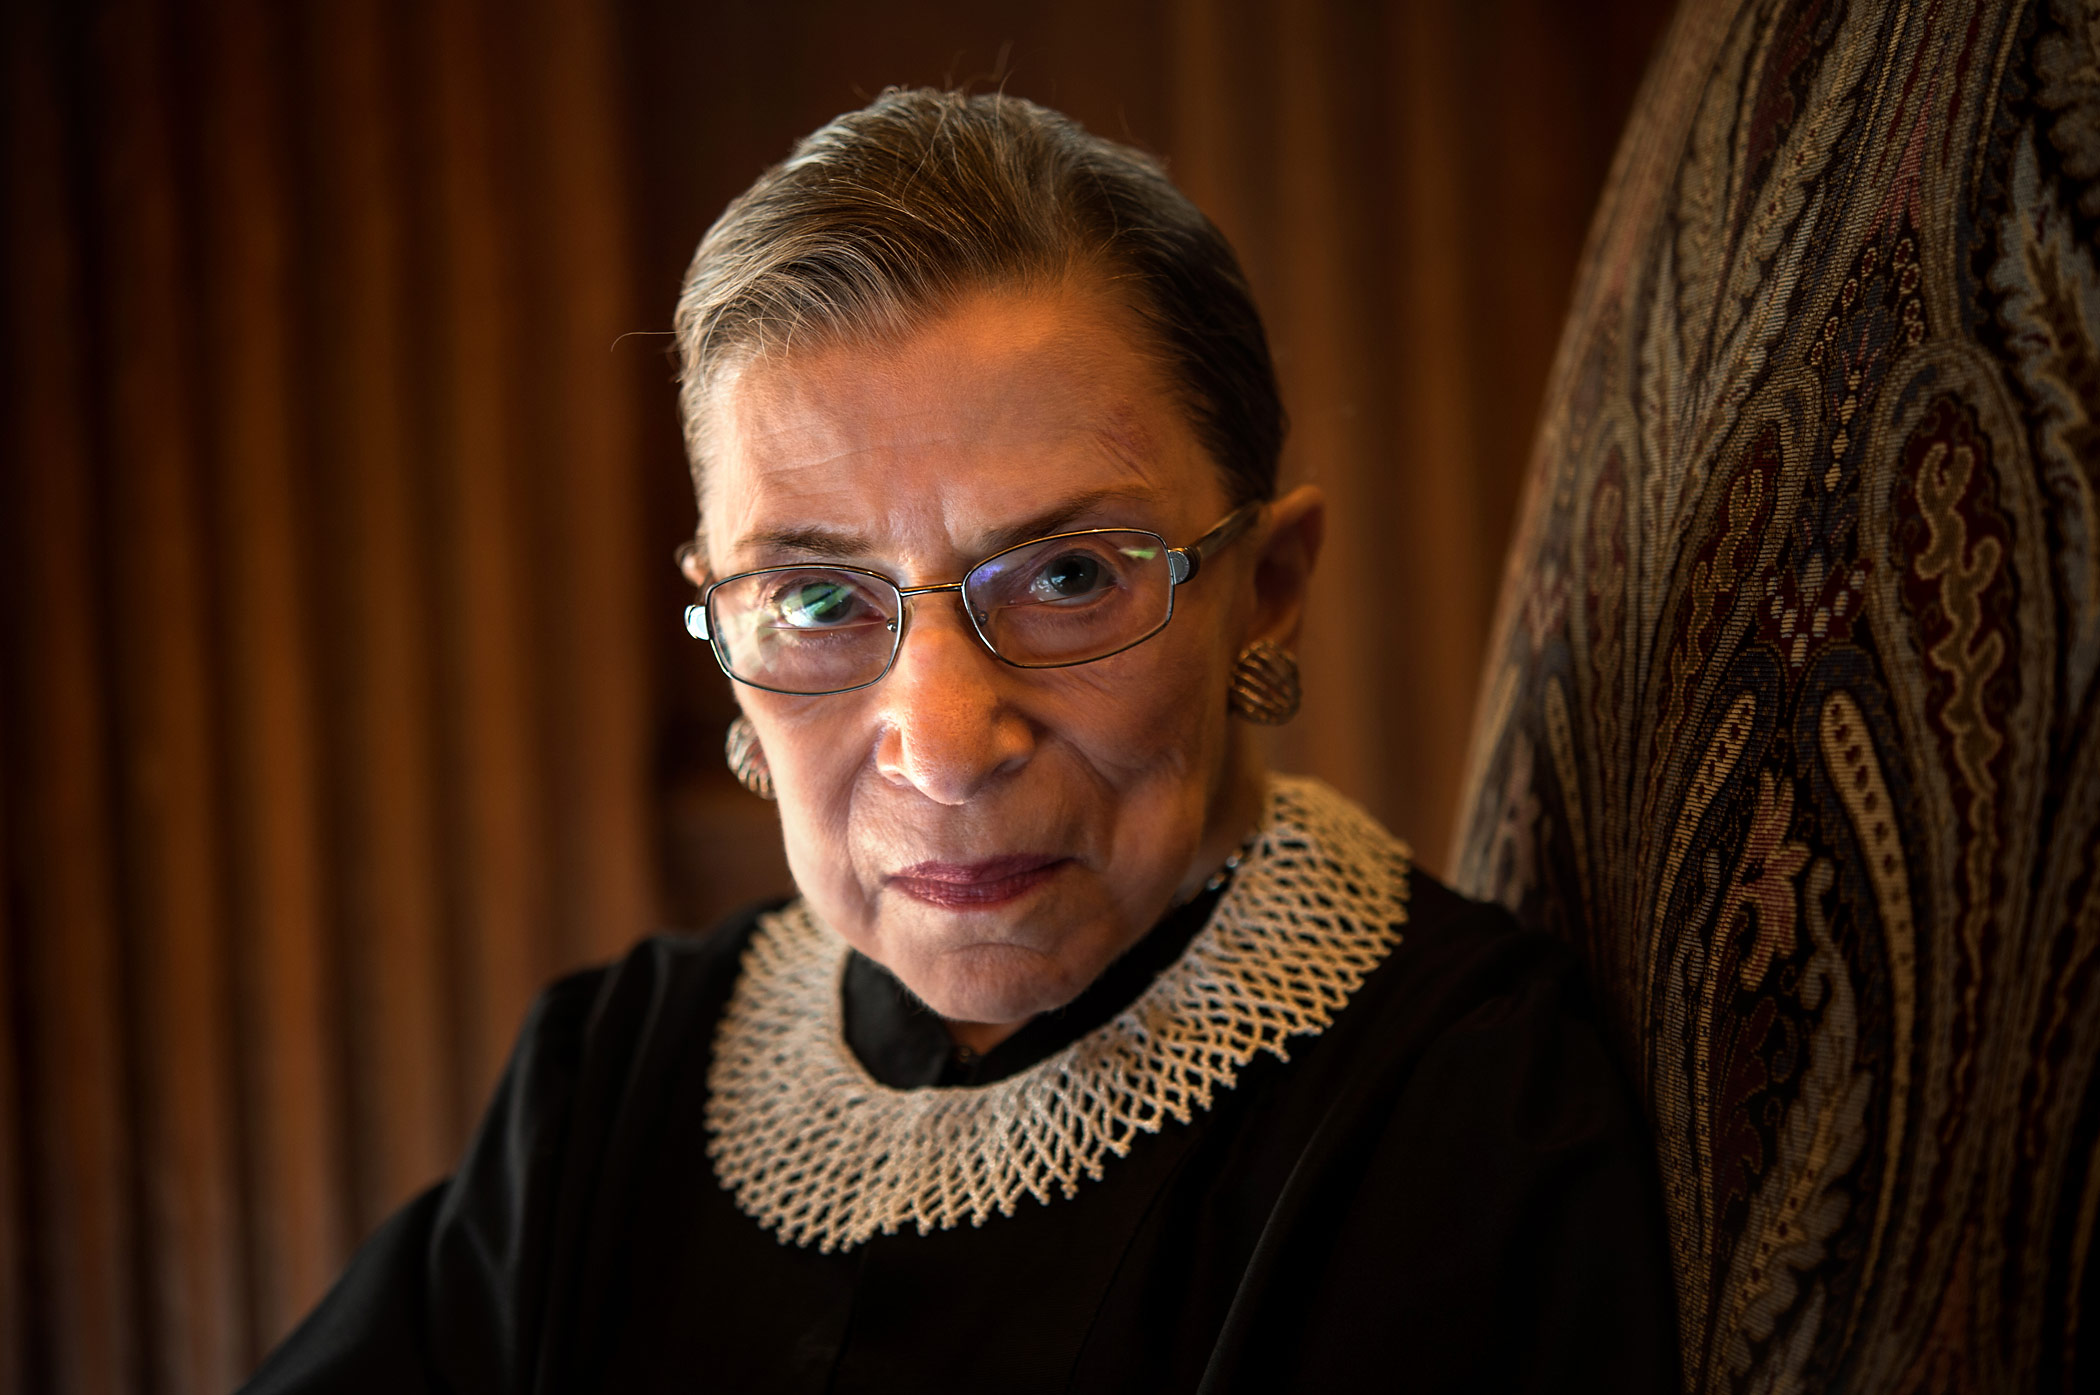 Supreme Court Justice Ruth Bader Ginsburg is photographed in the West conference room at the U.S. Supreme Court in Washington, D.C., on August 30, 2013.